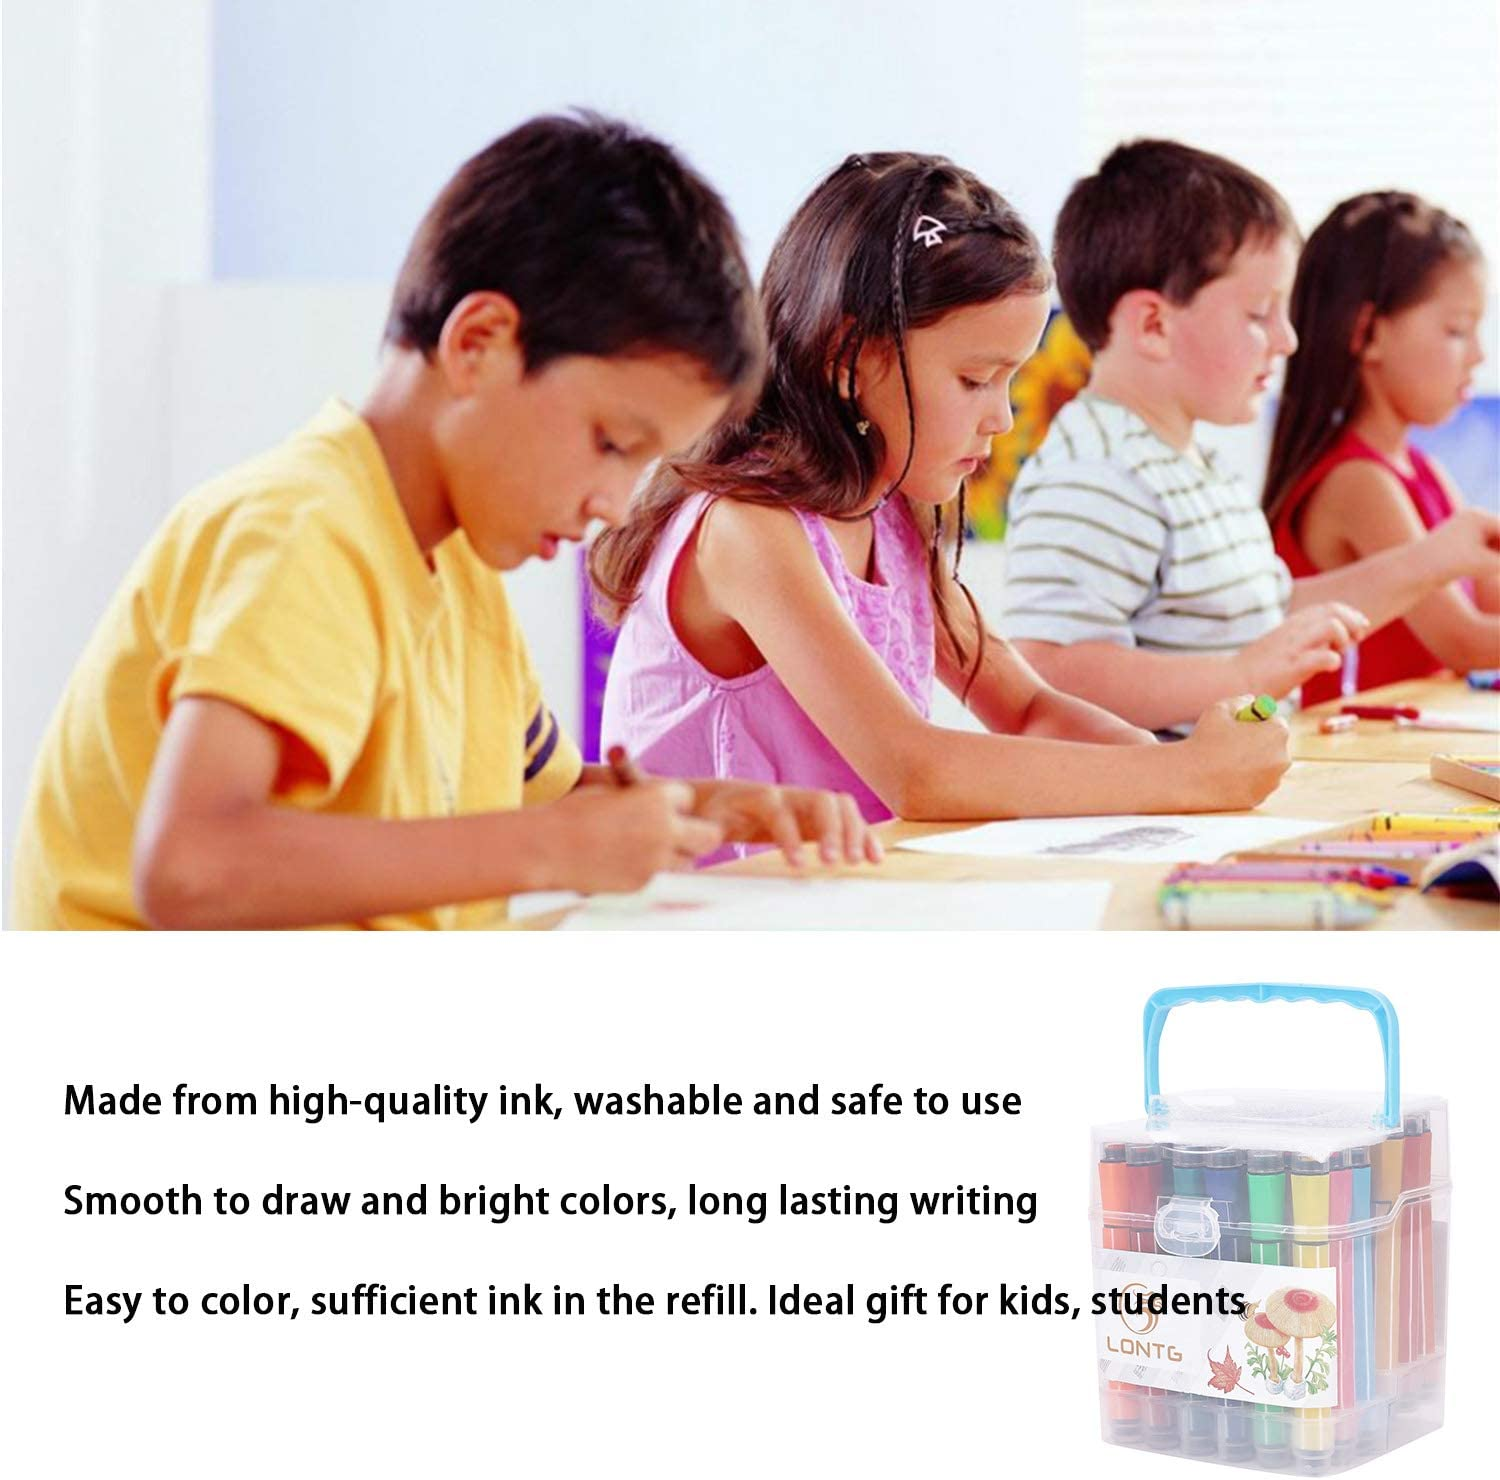 LONTG Colouring Pens for Kids Washable Water Colour Pen 24 Assorted Colours Felt Tip Colouring Pens Watercolour Brush Pen Set Drawing Pen Marker Pens for Children Students Painting Drawing Colouring